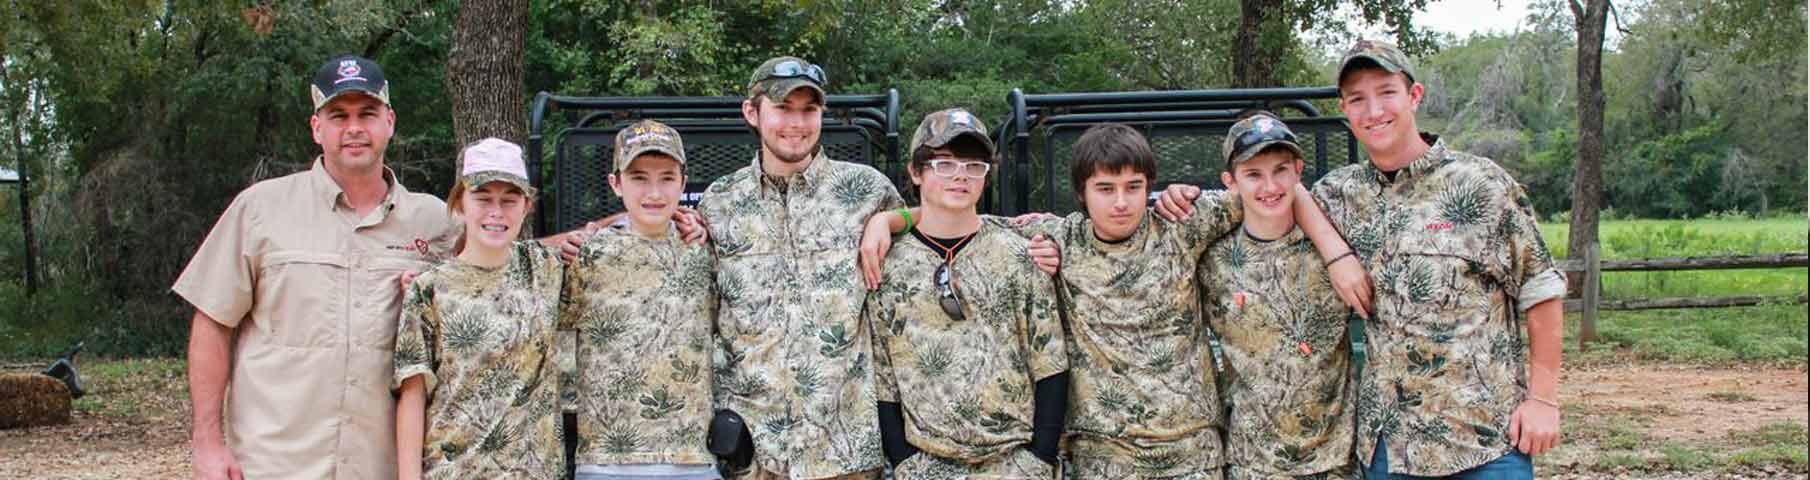 Group photo of young men from hunt with heart